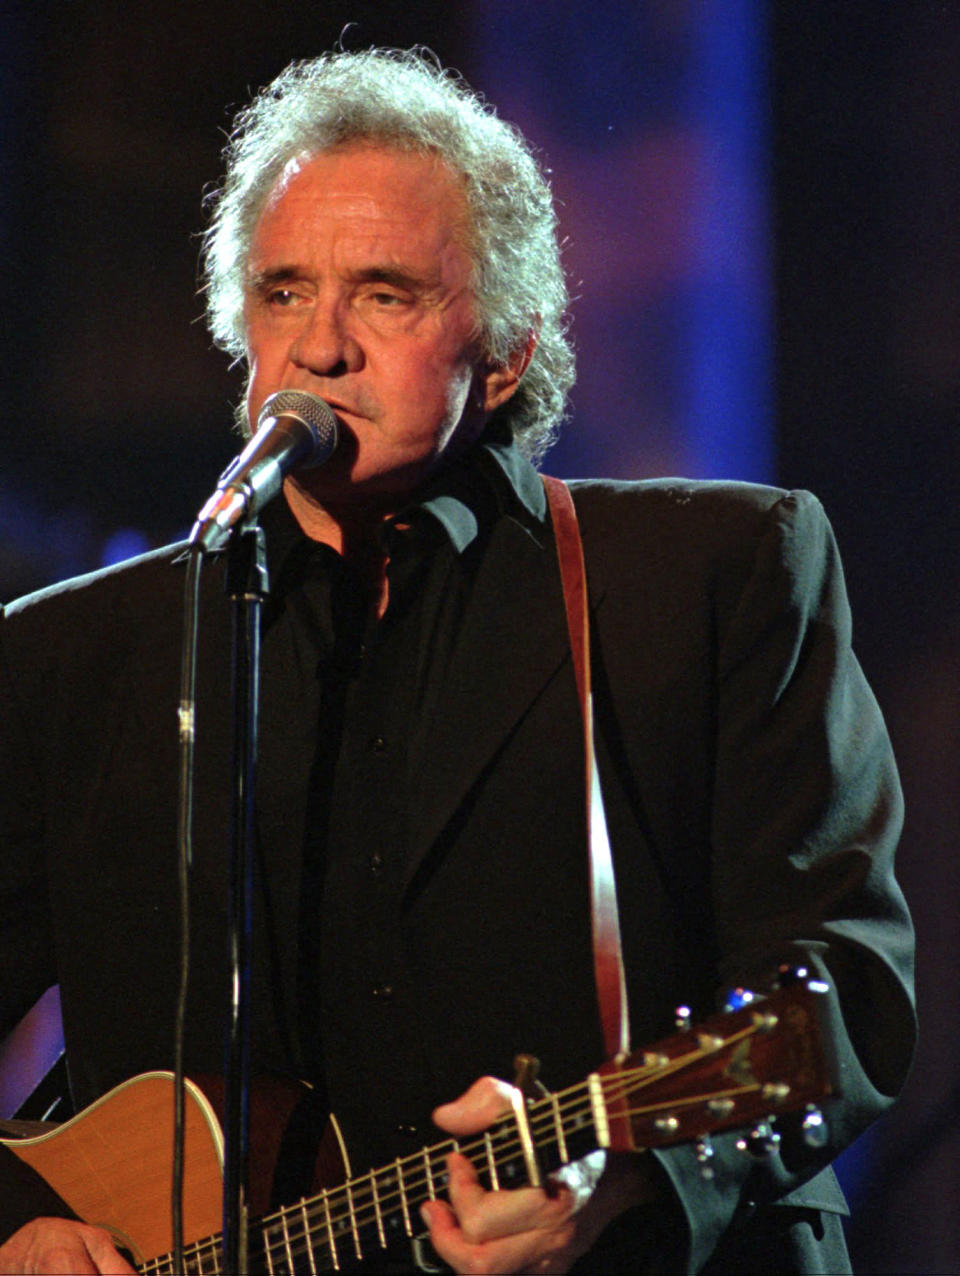 """FILE - In this Sept. 2, 1995, file photo, singer Johnny Cash performs during his segment of the Concert for the Rock and Roll Hall of Fame, in Cleveland. The Man in Black is about to get his own day in Arkansas. The Arkansas House on Tuesday, April 20, 2021, gave unanimous final approval to a bill that would make Feb. 26 """"Johnny Cash Day,"""" sending it to Gov. Asa Hutchinson, who plans to sign it. (AP Photo/Mark Duncan, File)"""